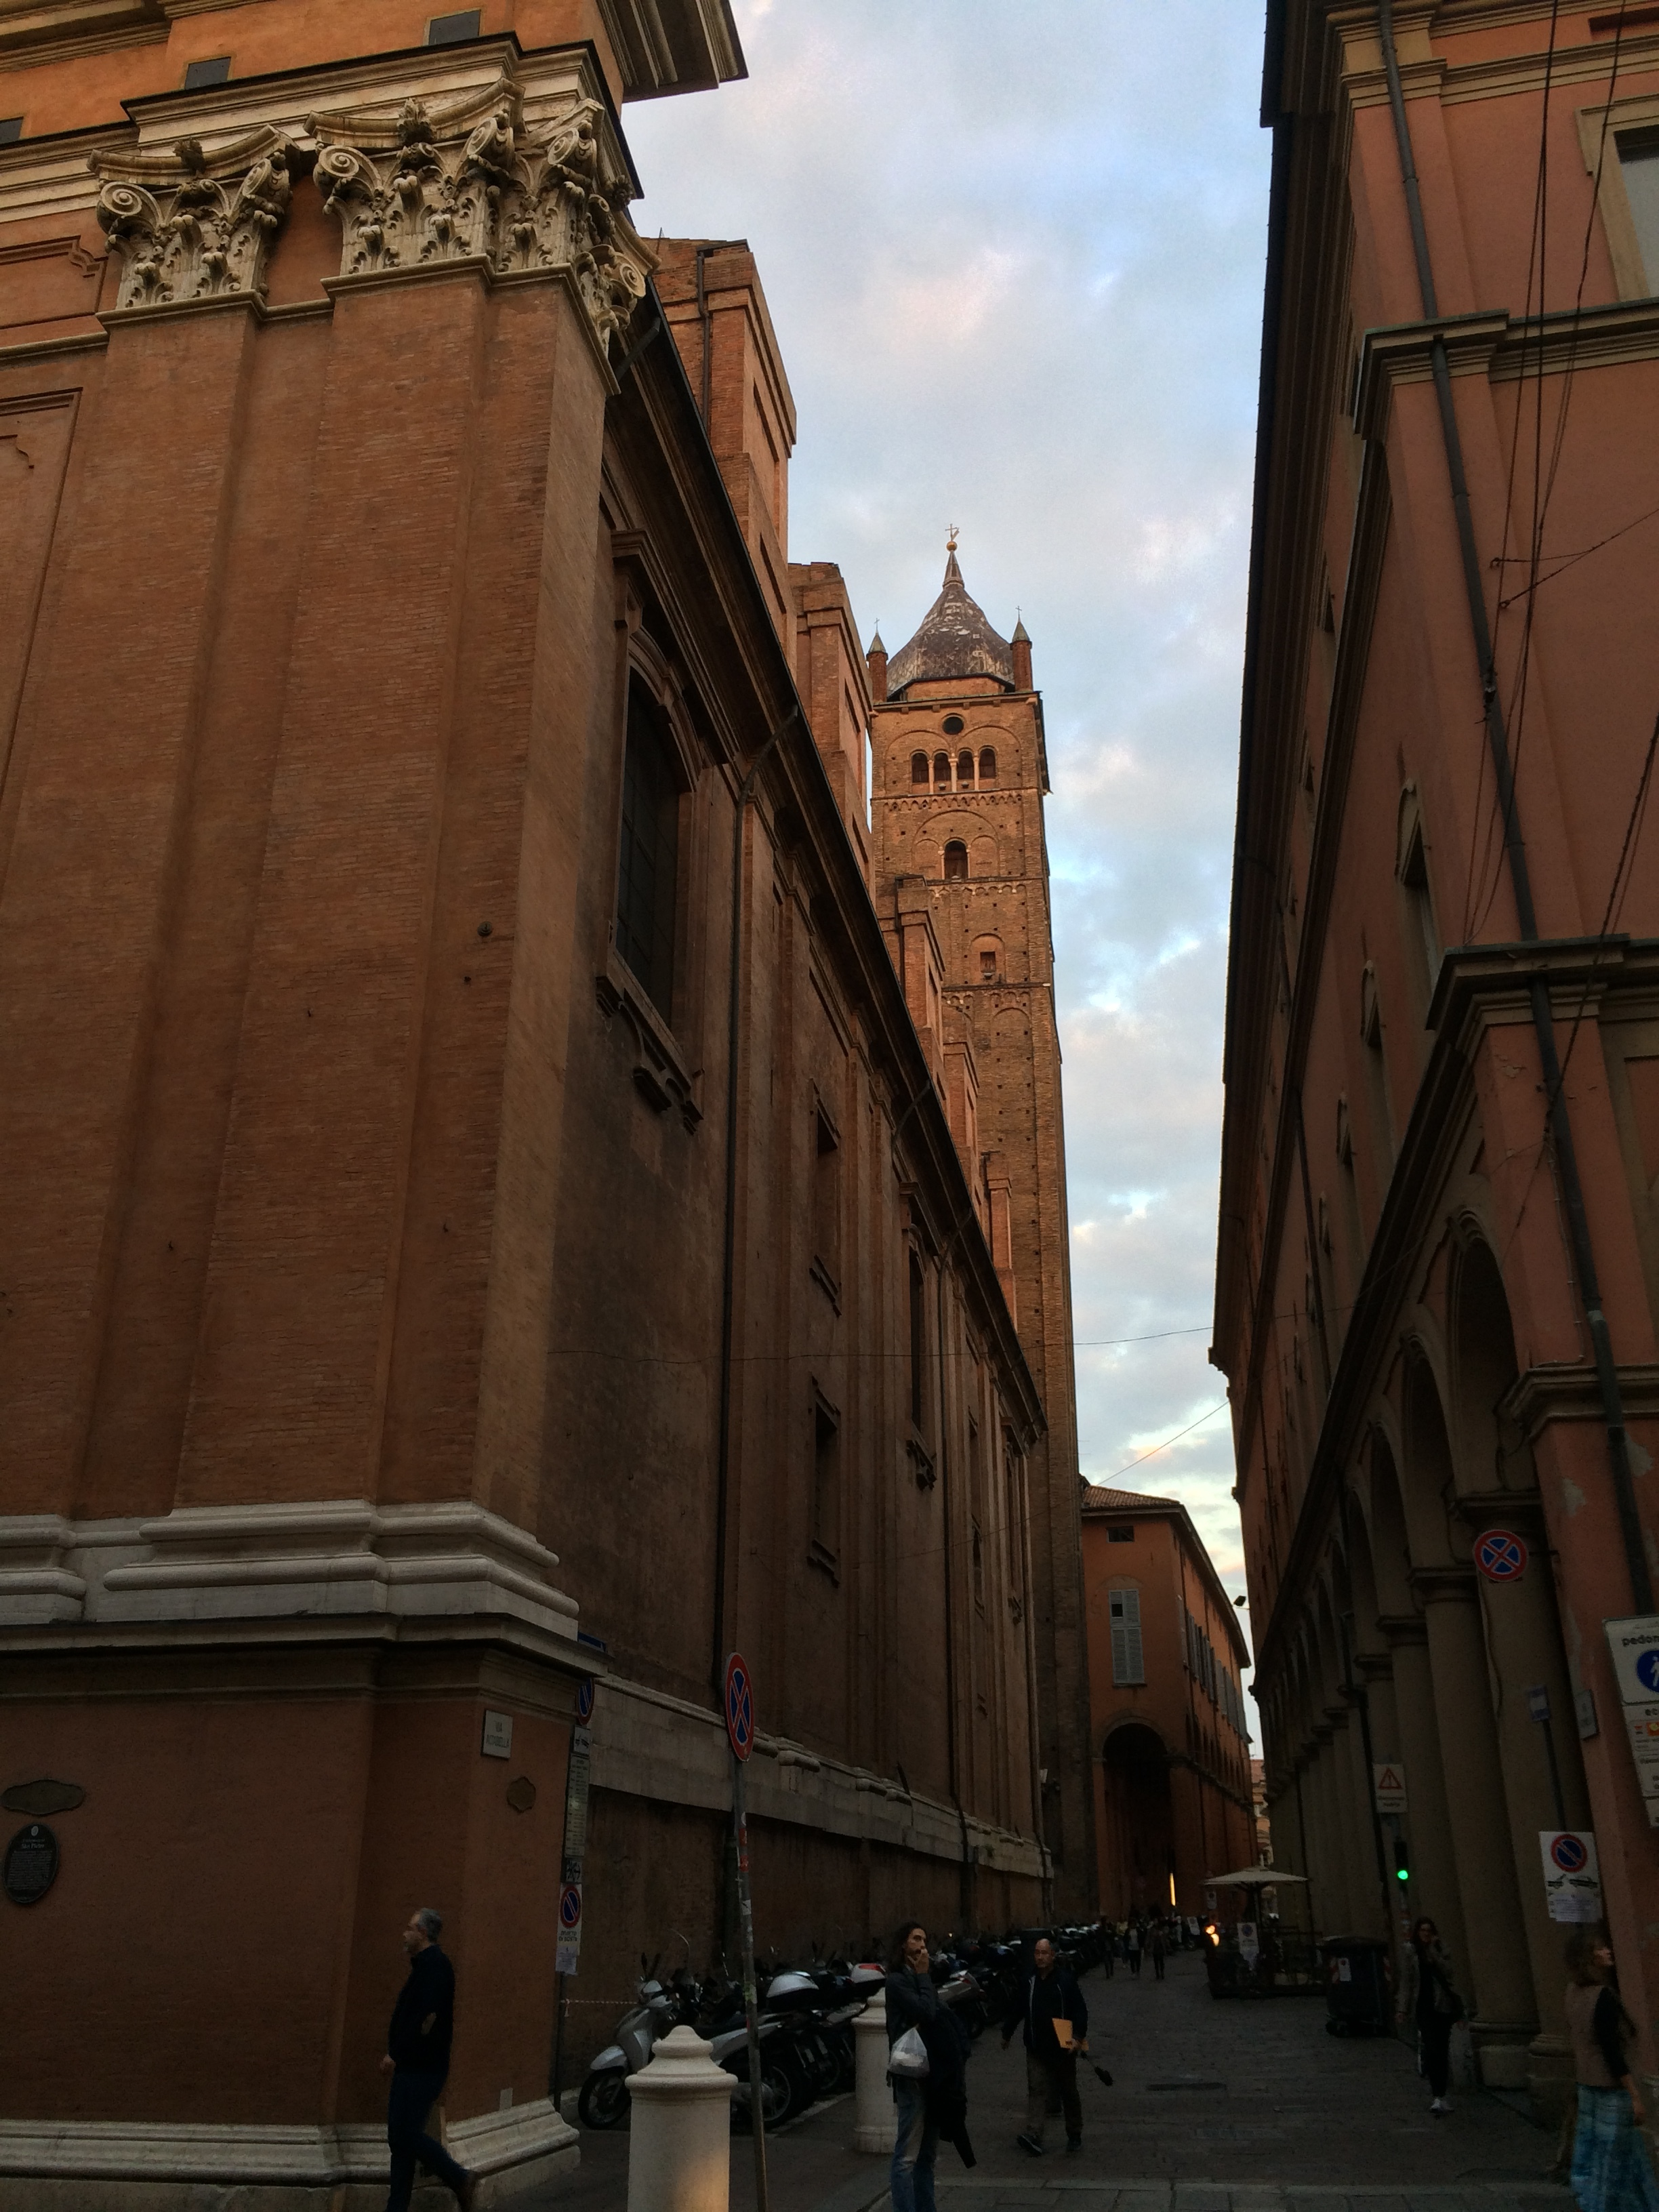 Bologna- from 11th Century- a city of towers